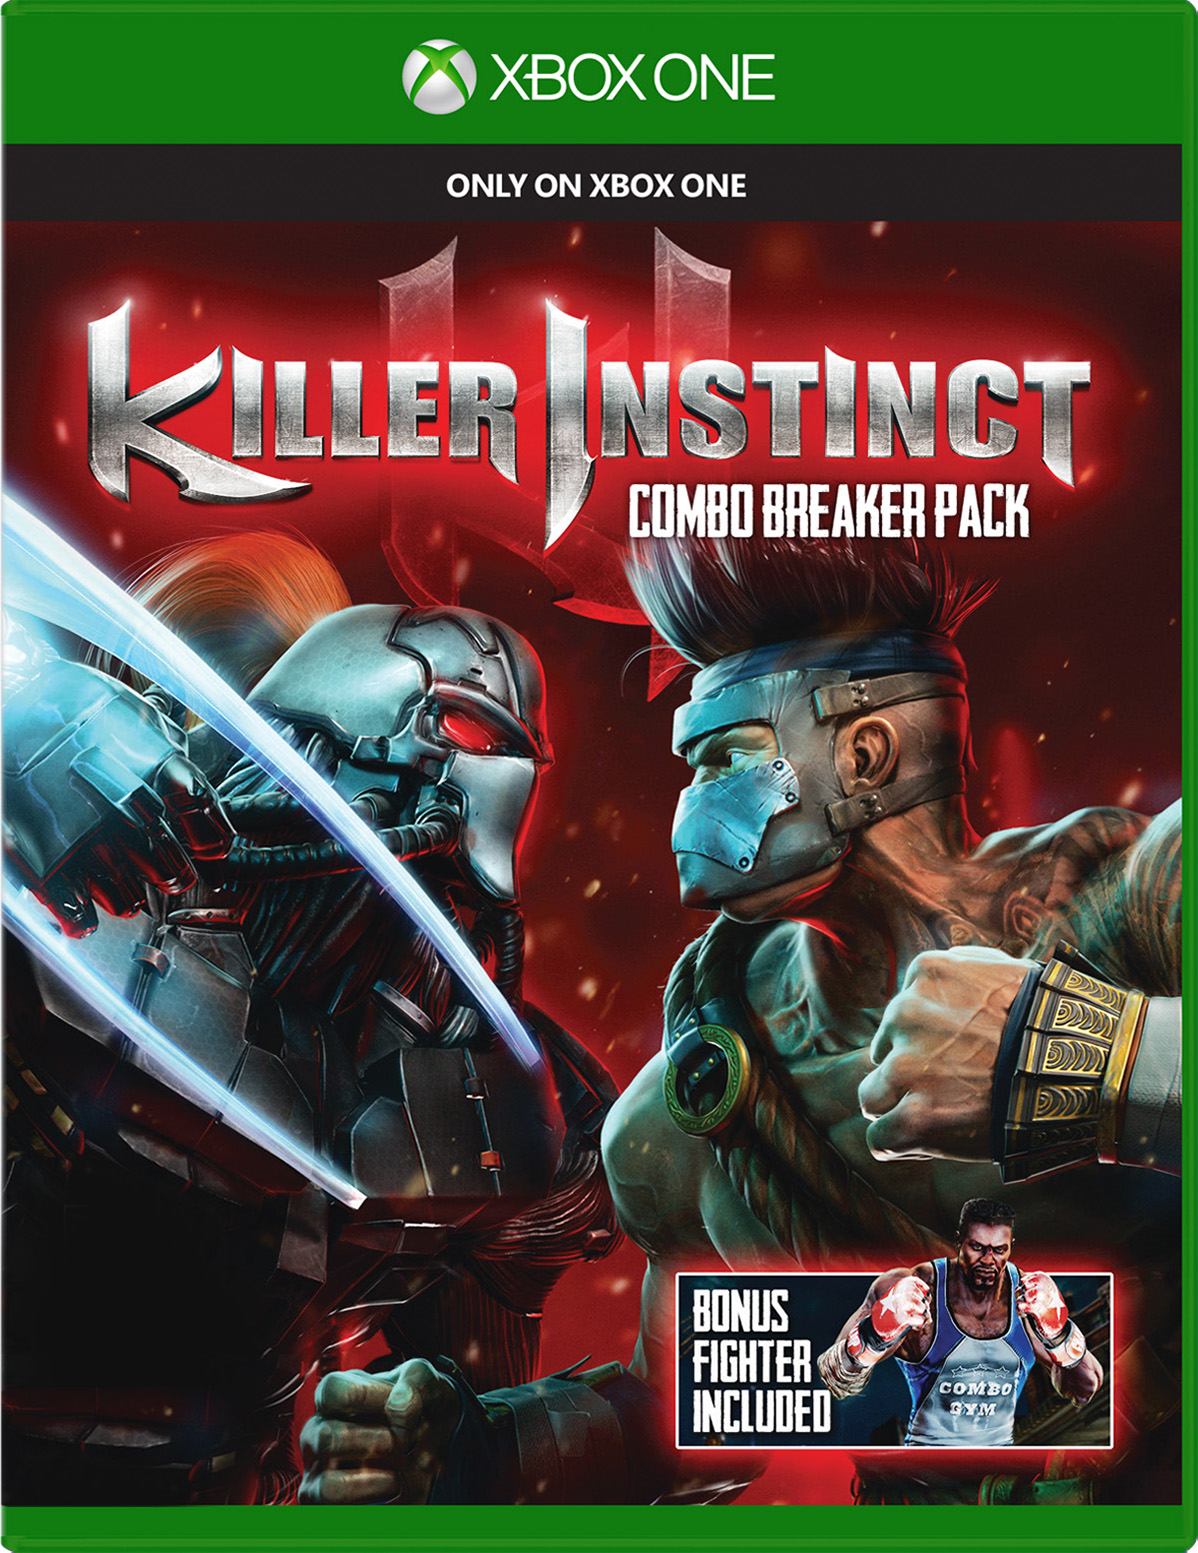 Killer Instinct Combo Breaker Pack for Xbox One 3PT-00001